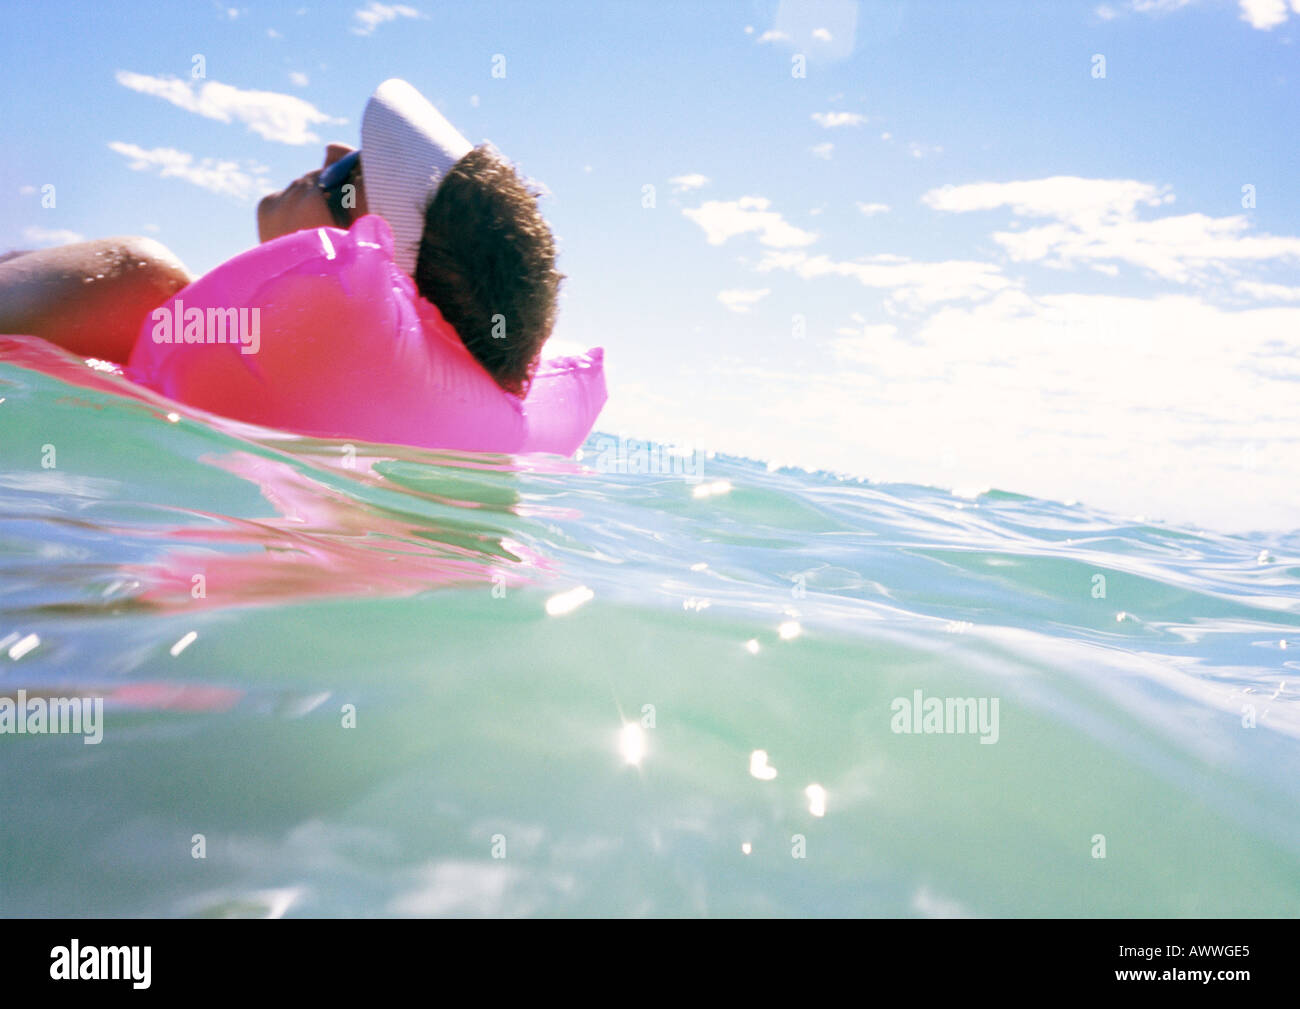 Man Floating On Air Mattress In Sea Close Up